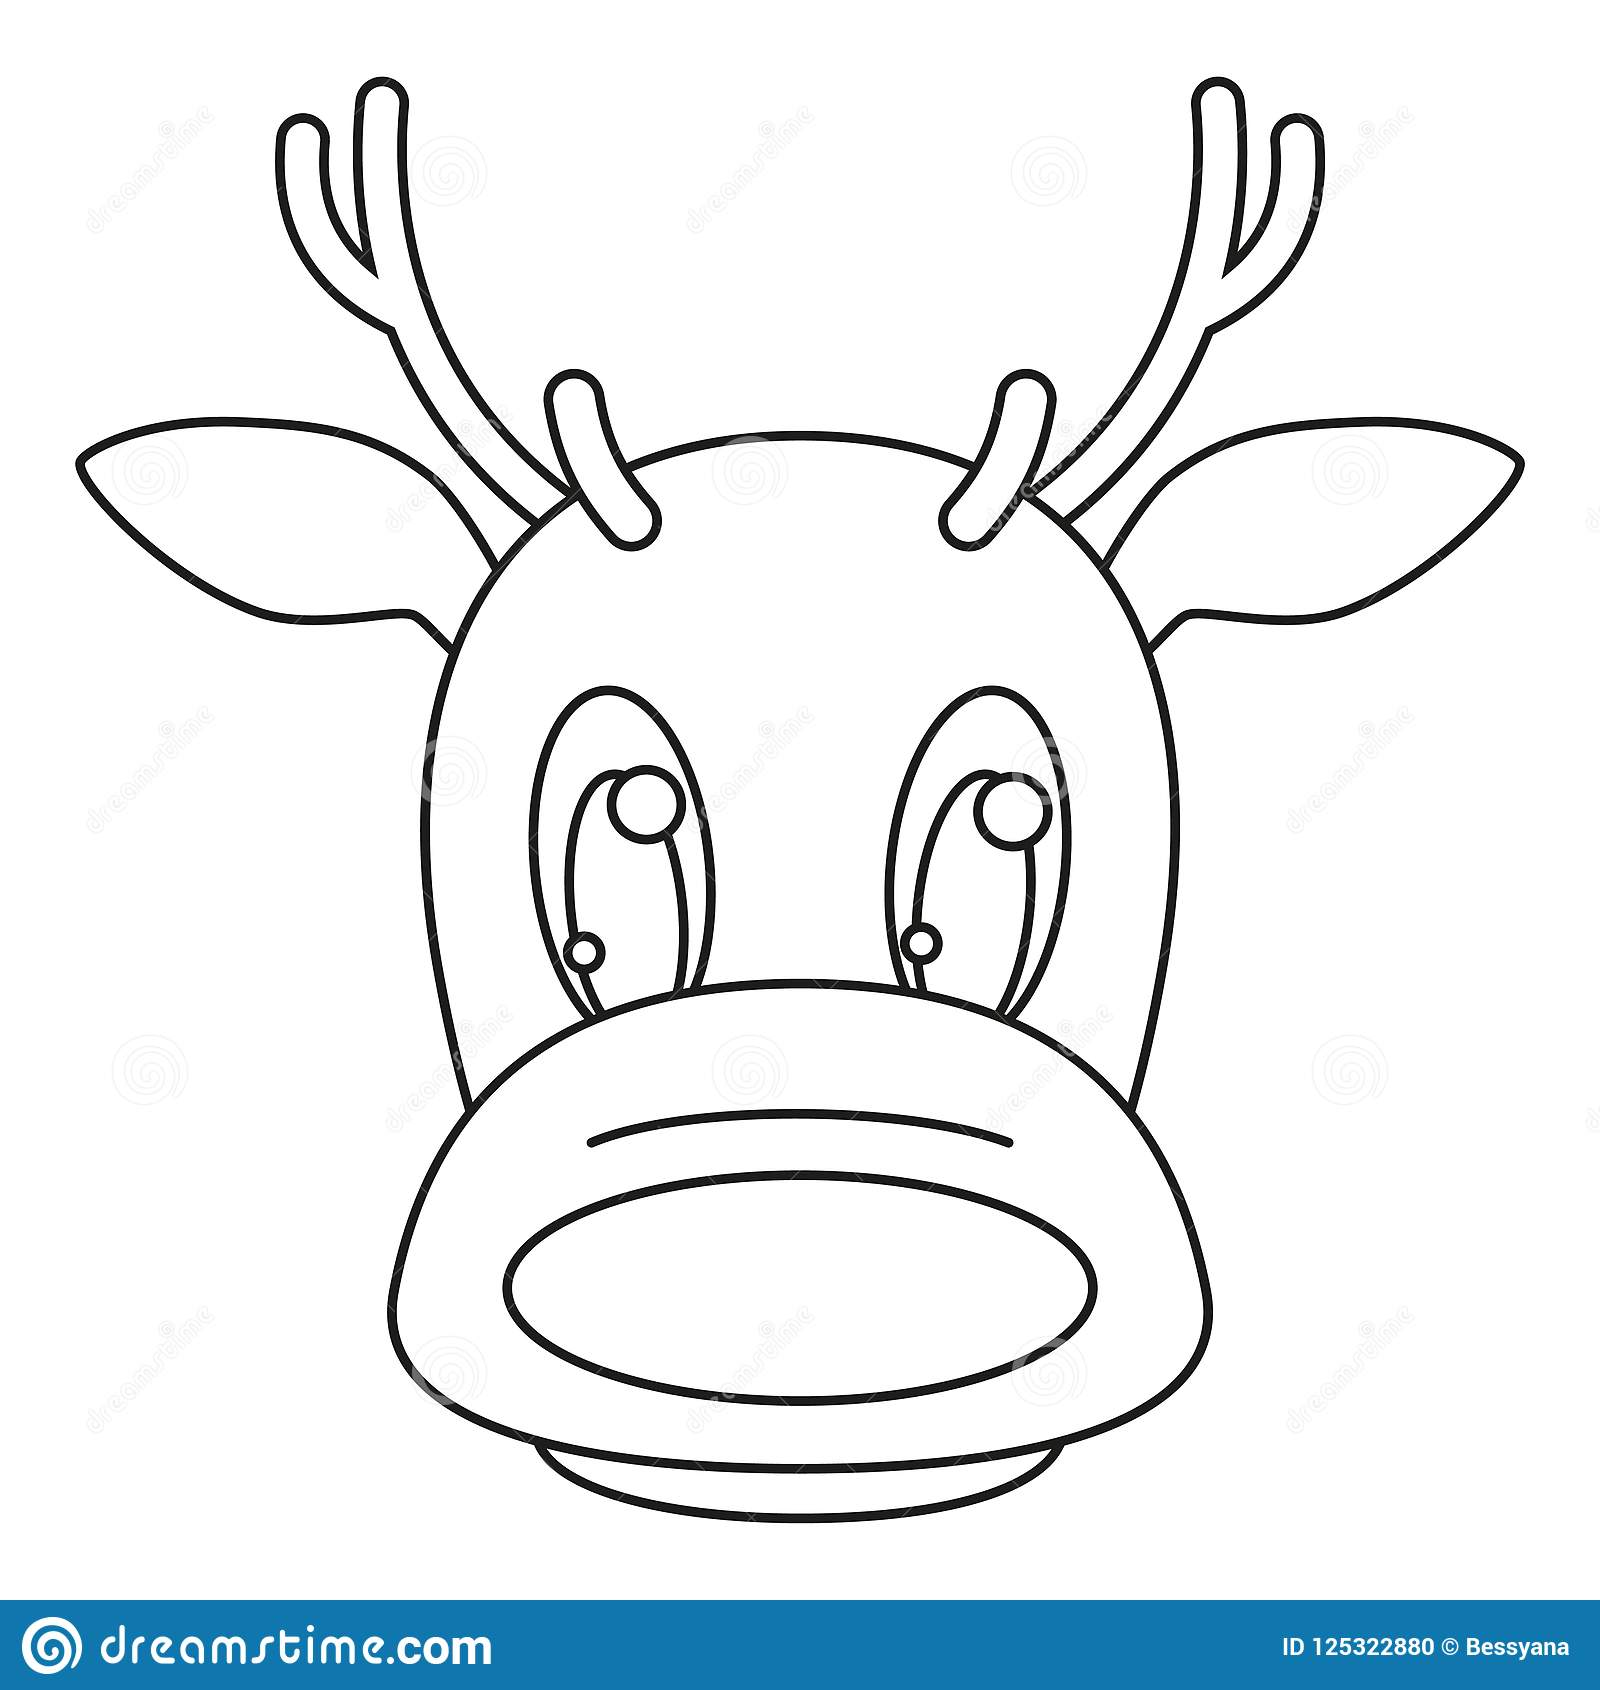 Line Art Black And White Reindeer Head Stock Vector ...